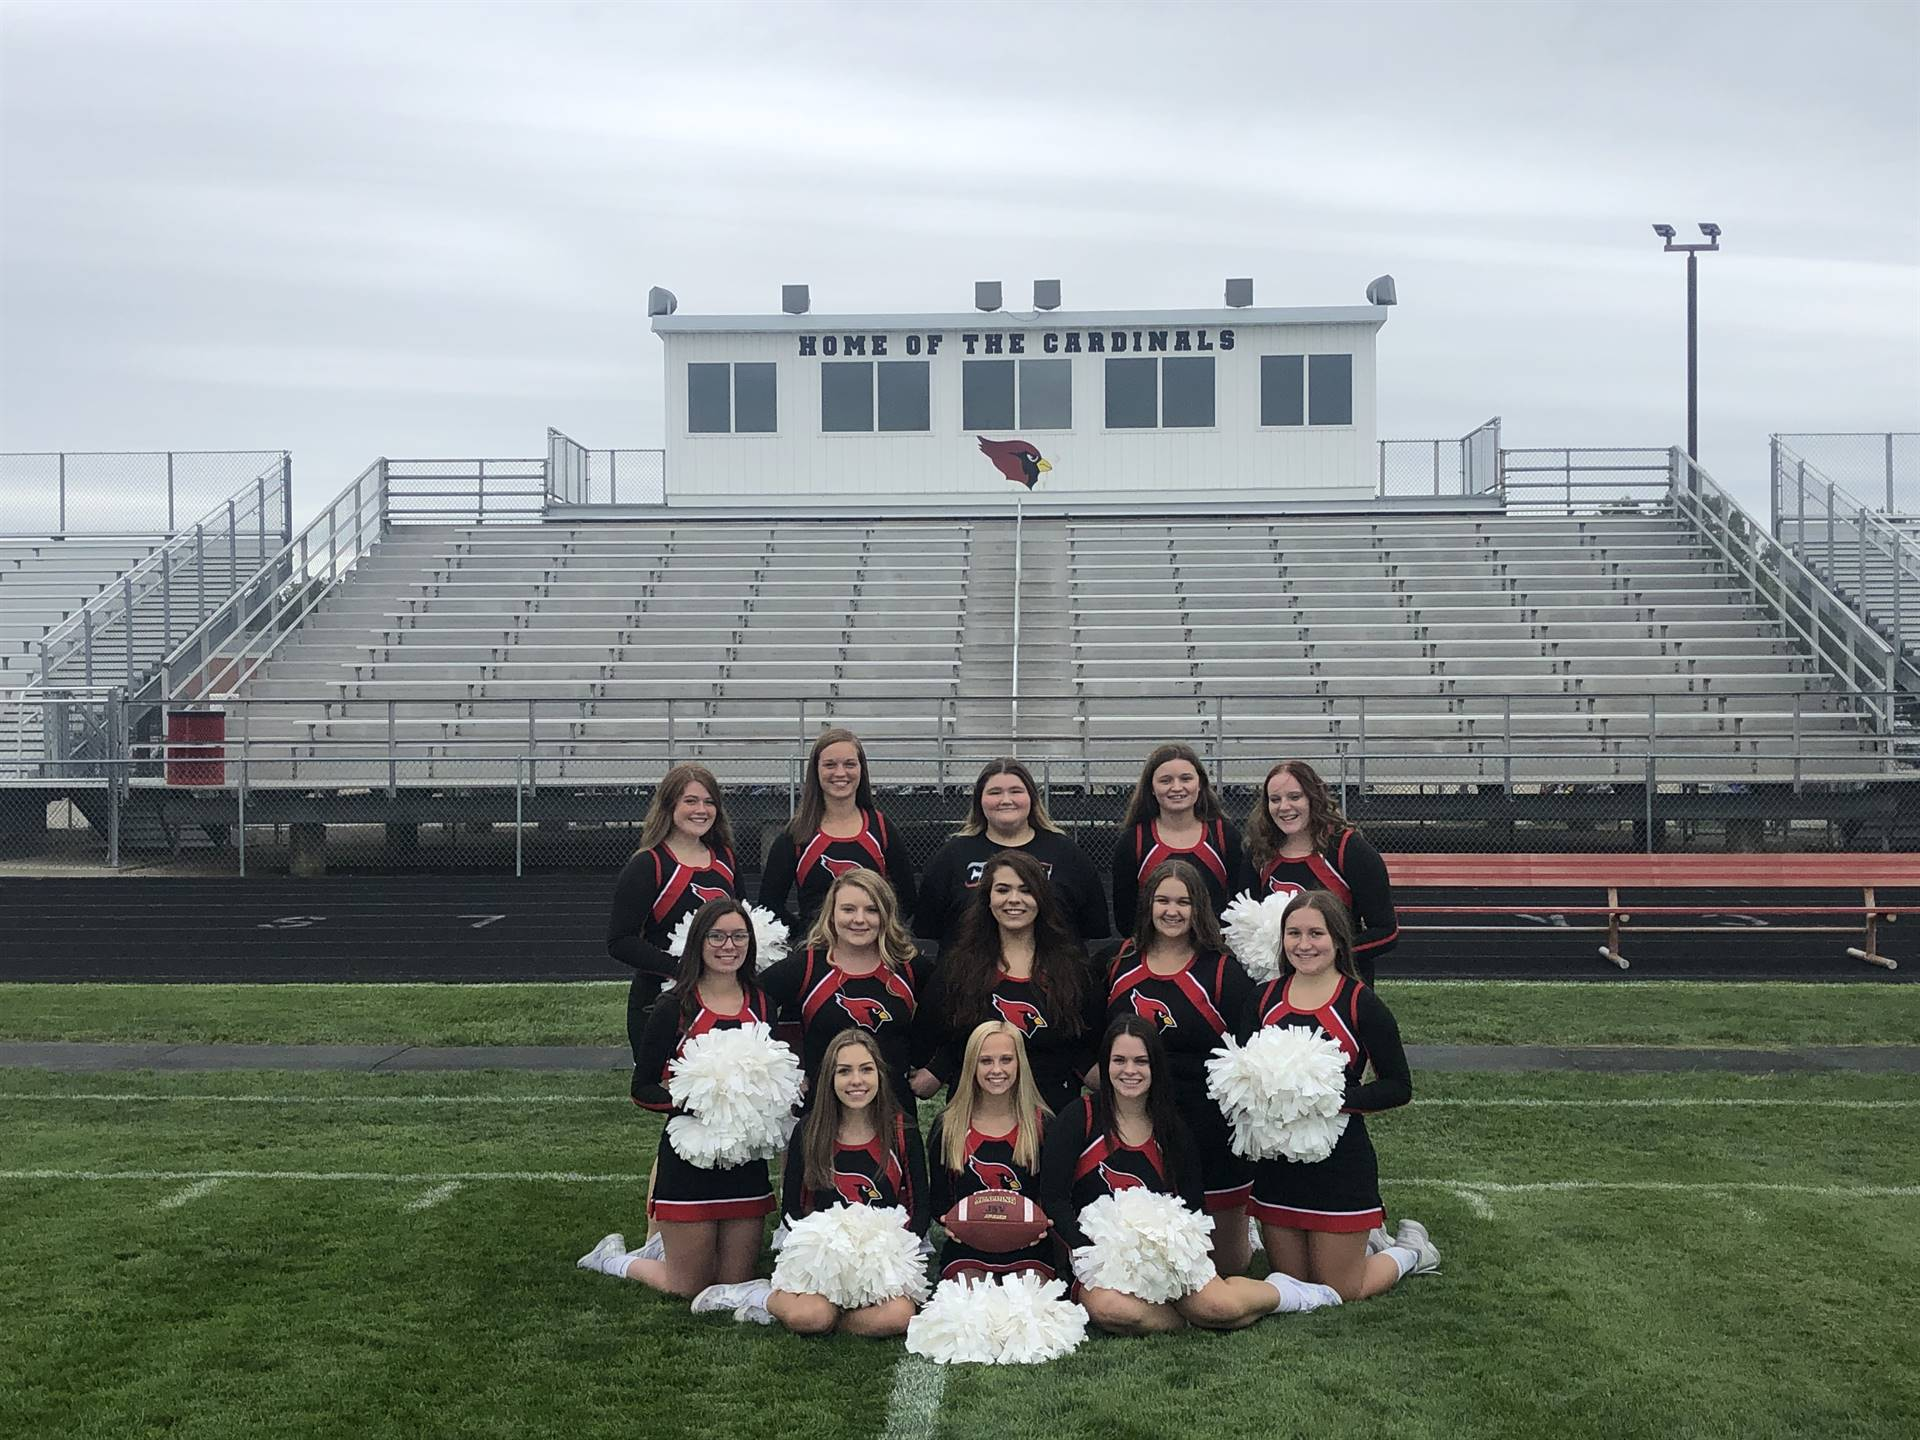 cheerleaders posing for a team pic on the football field